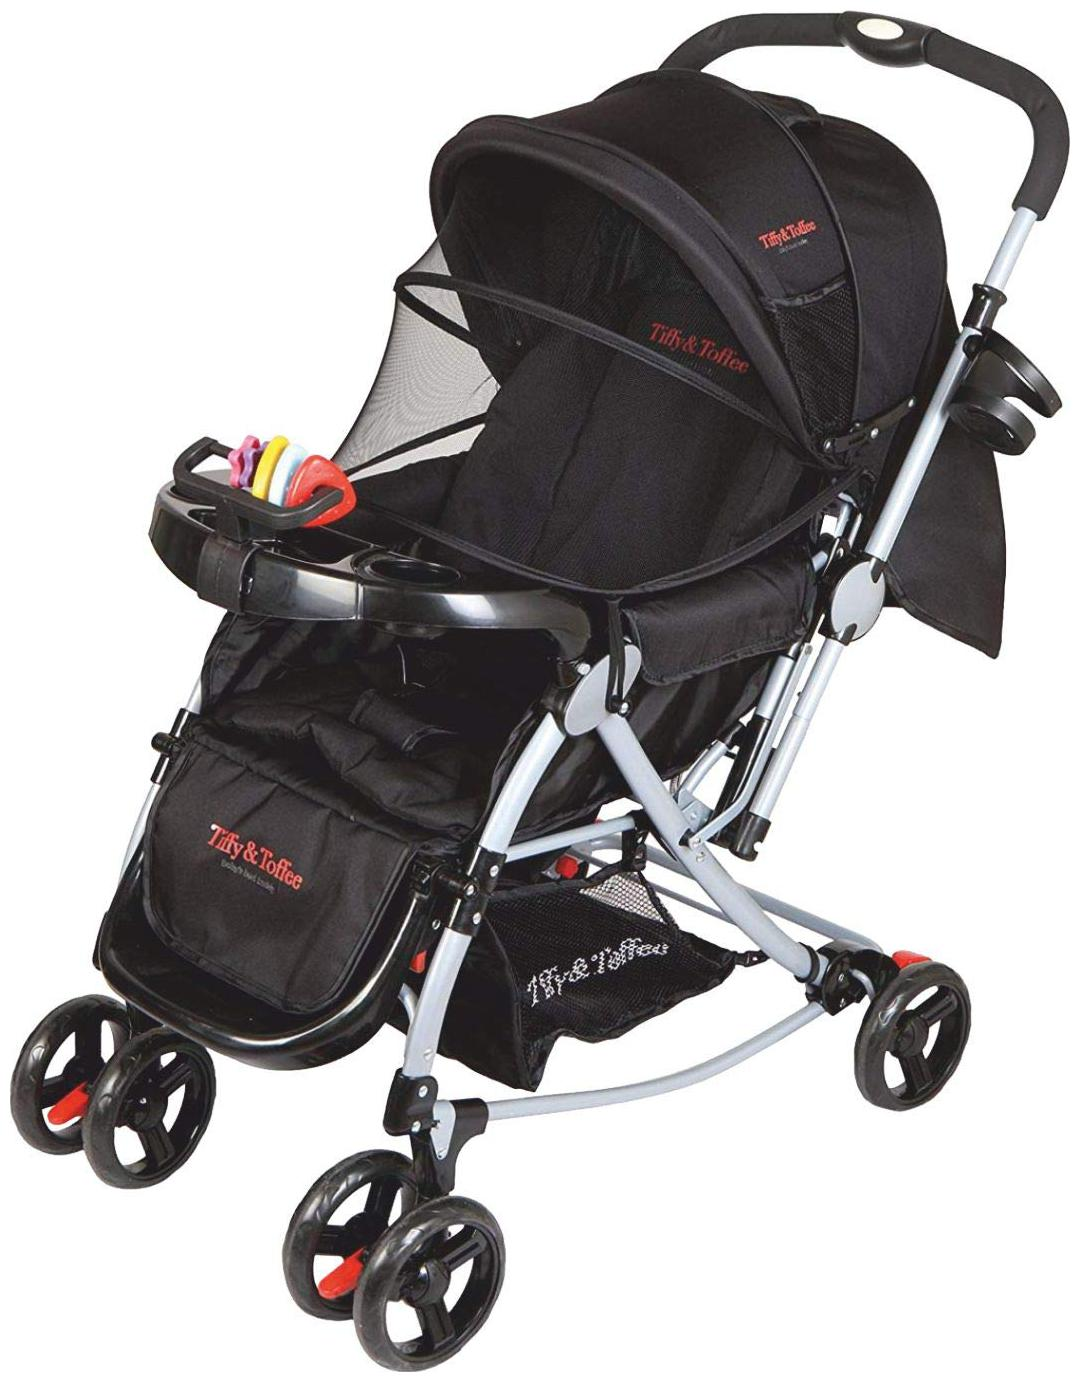 Pram Stroller India Prams And Strollers Buy Baby Prams Strollers Online At